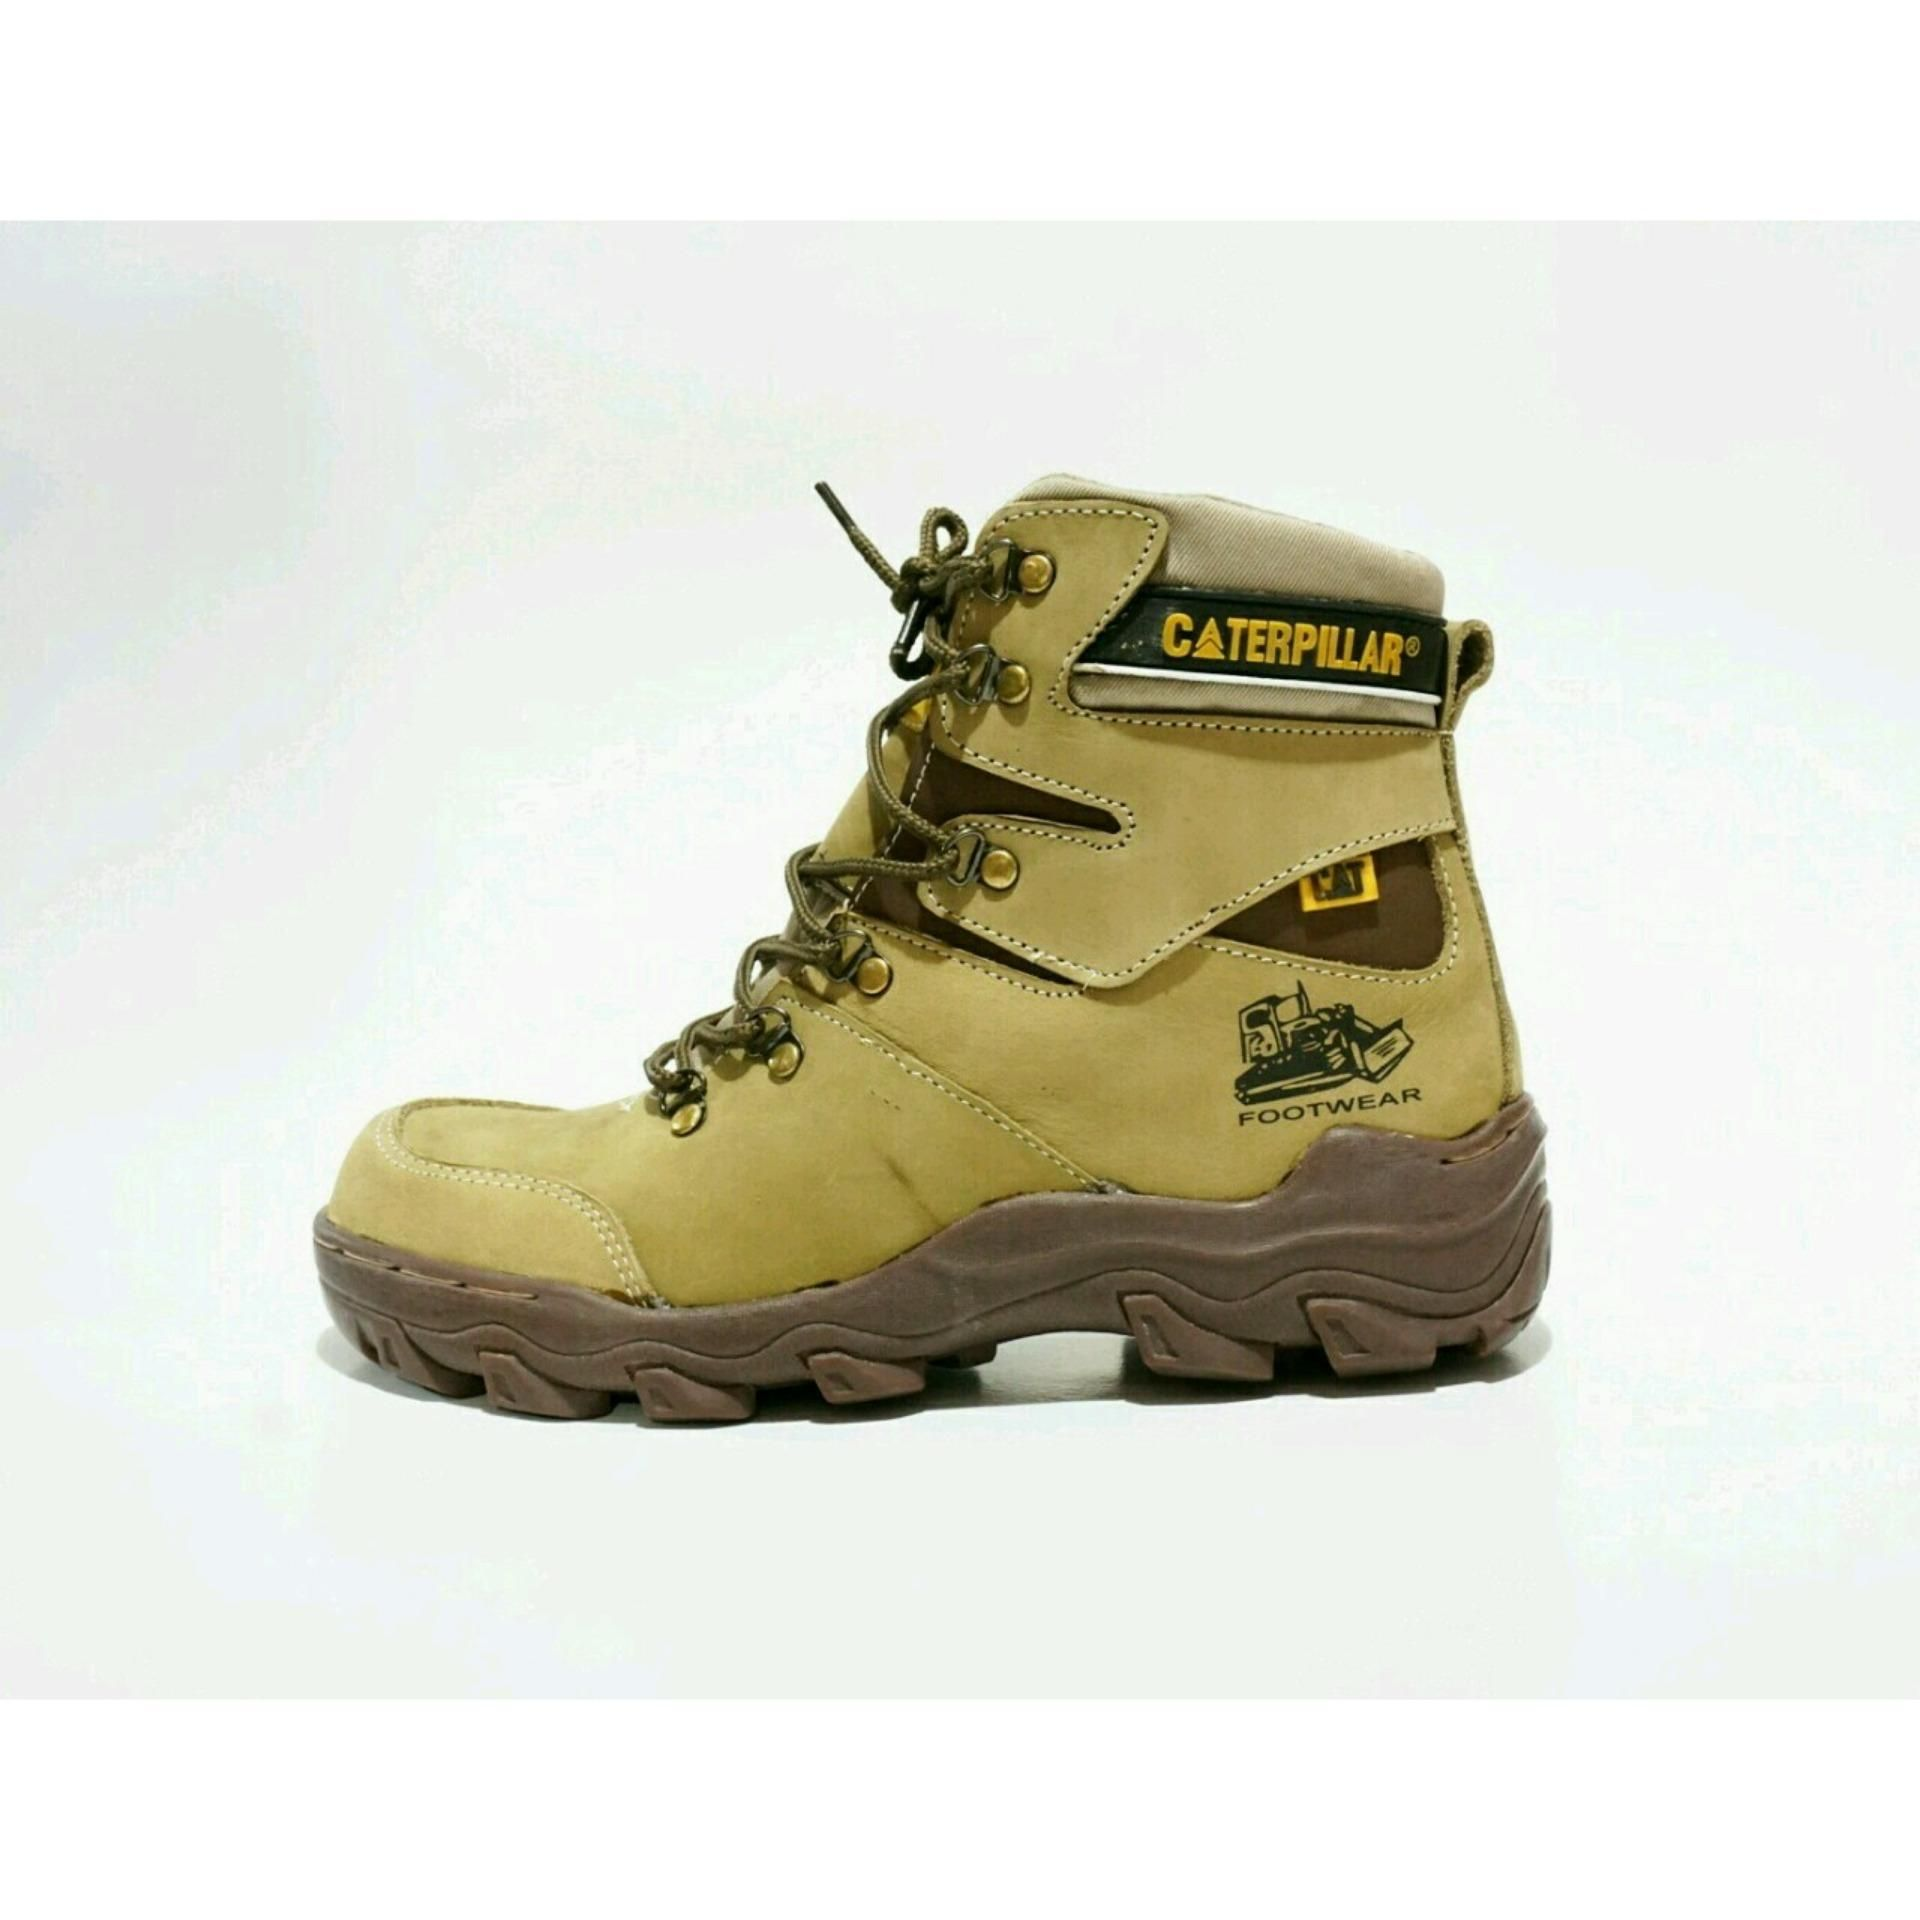 Sepatu Caterpillar Pajero Safety Boots KULIT ASLI Caterpillar Leather Boots Indonesia Safety